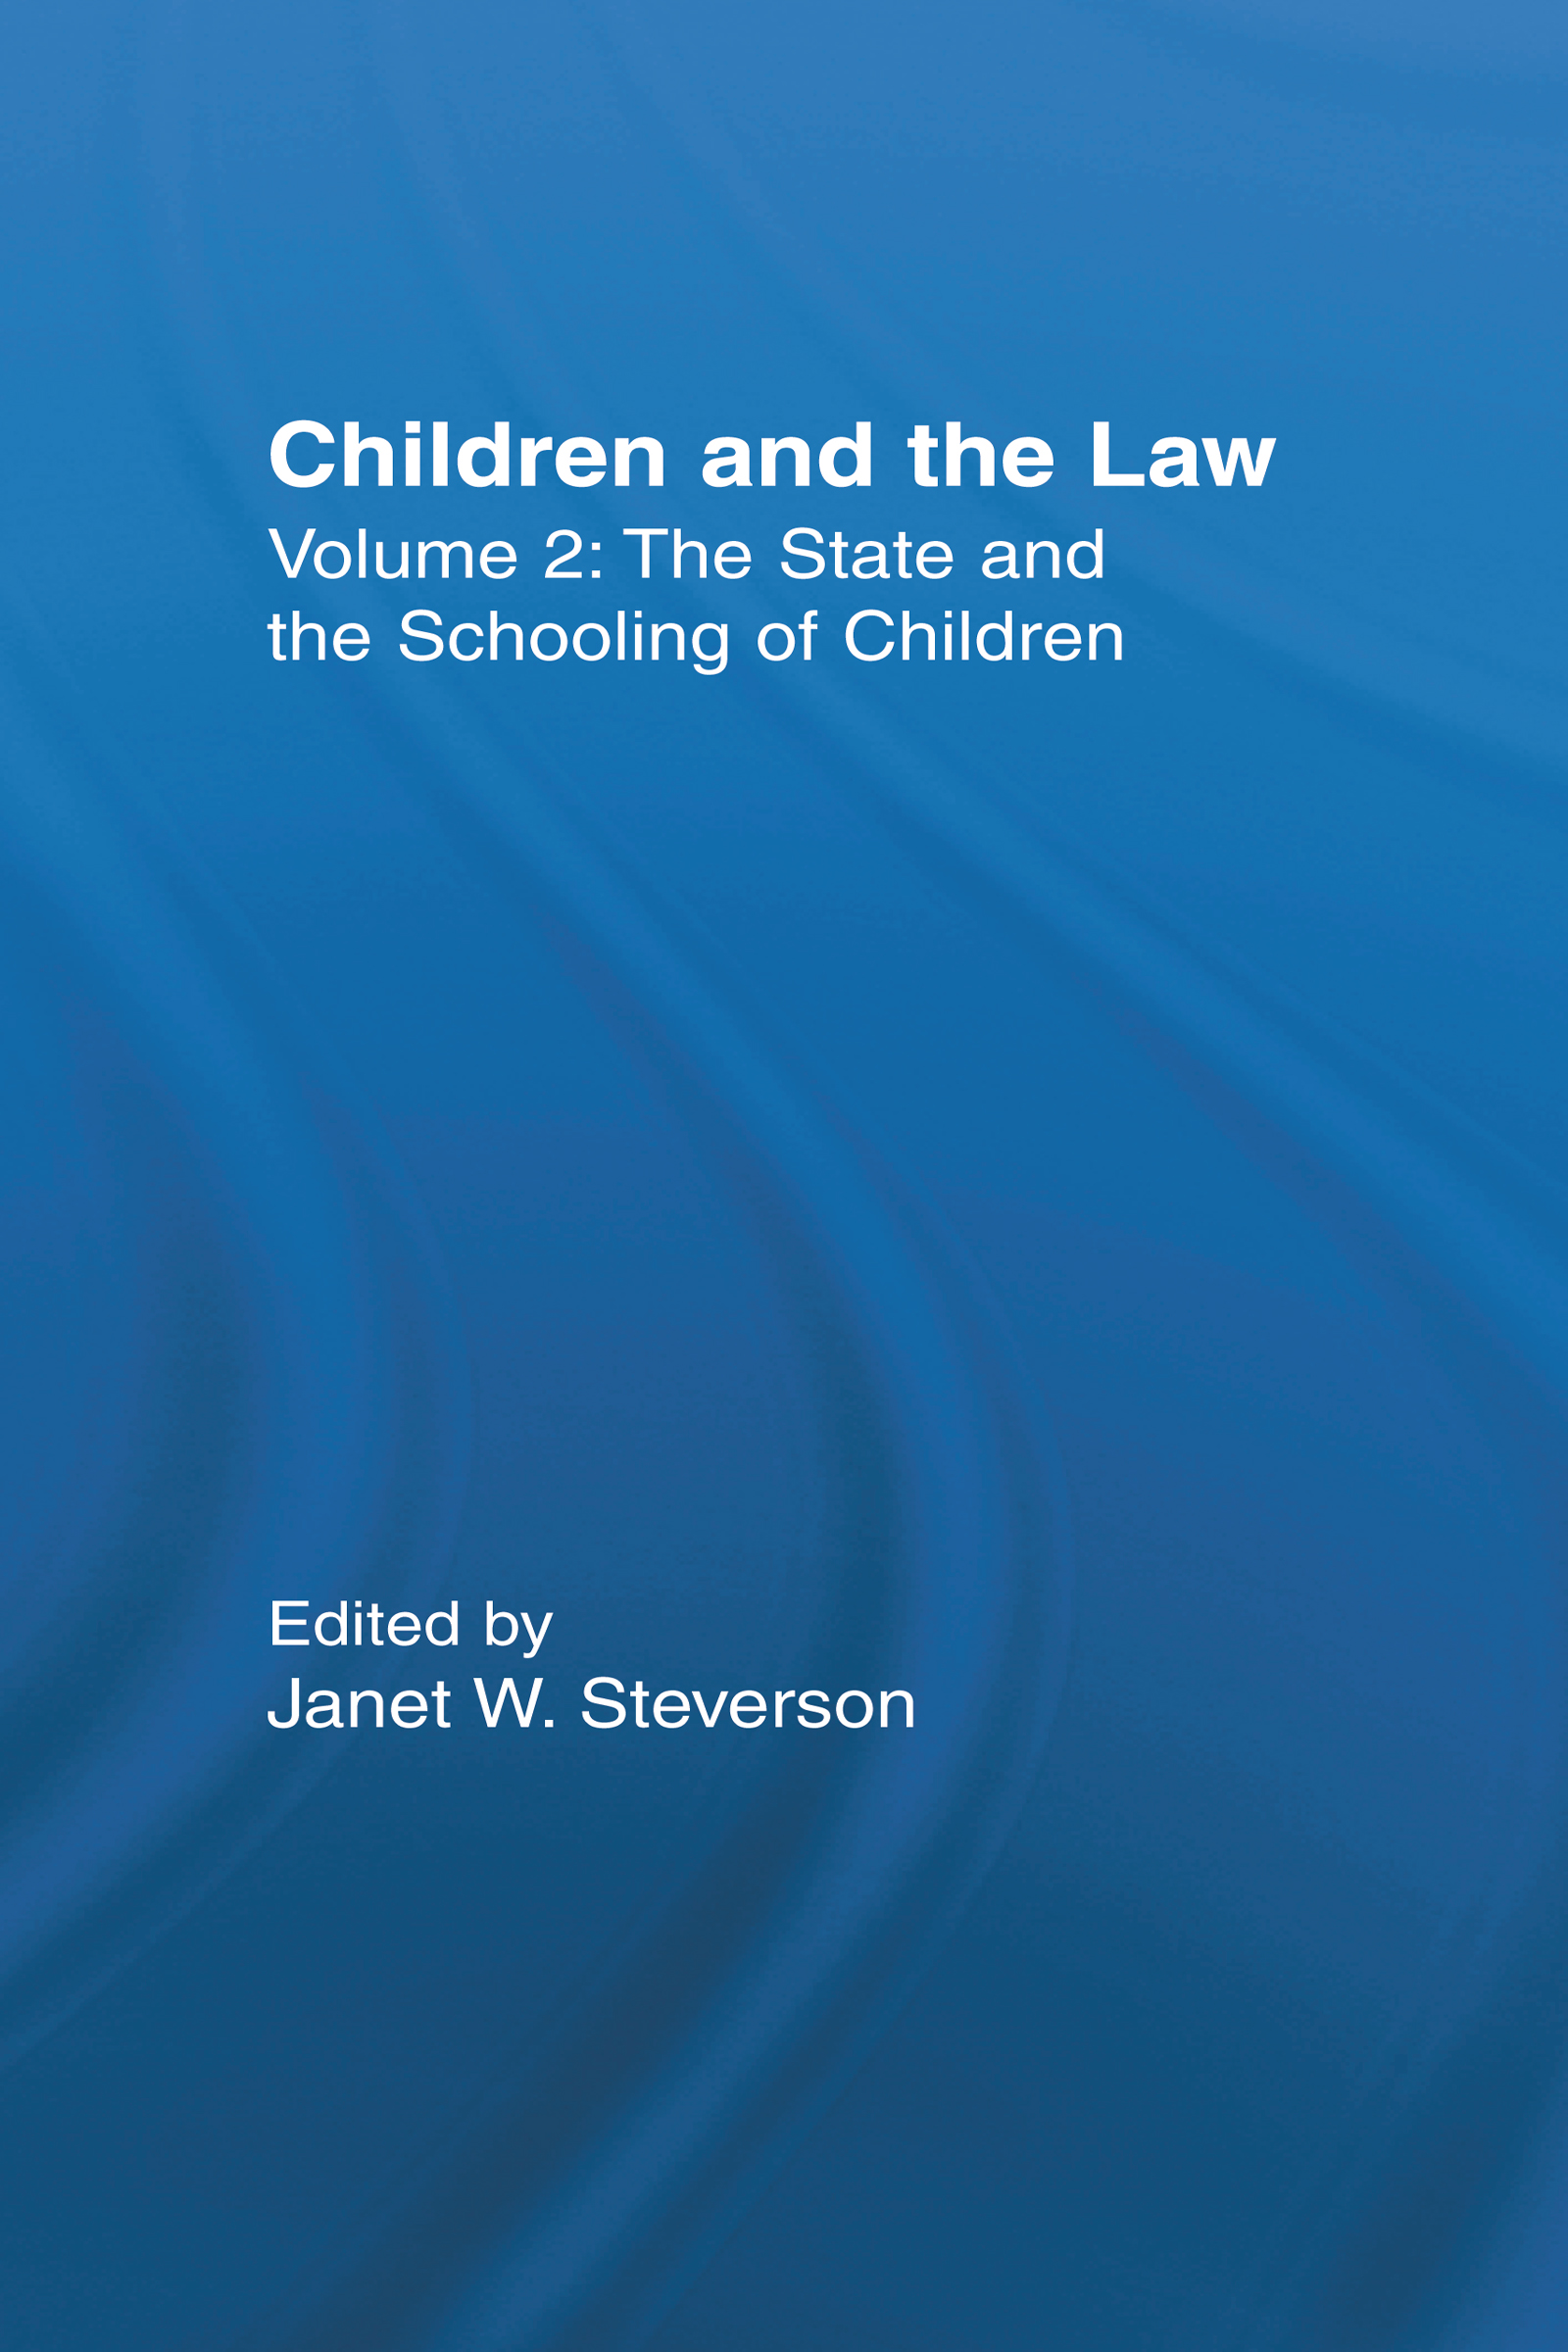 The State and the Schooling of Children: Children and the Law book cover